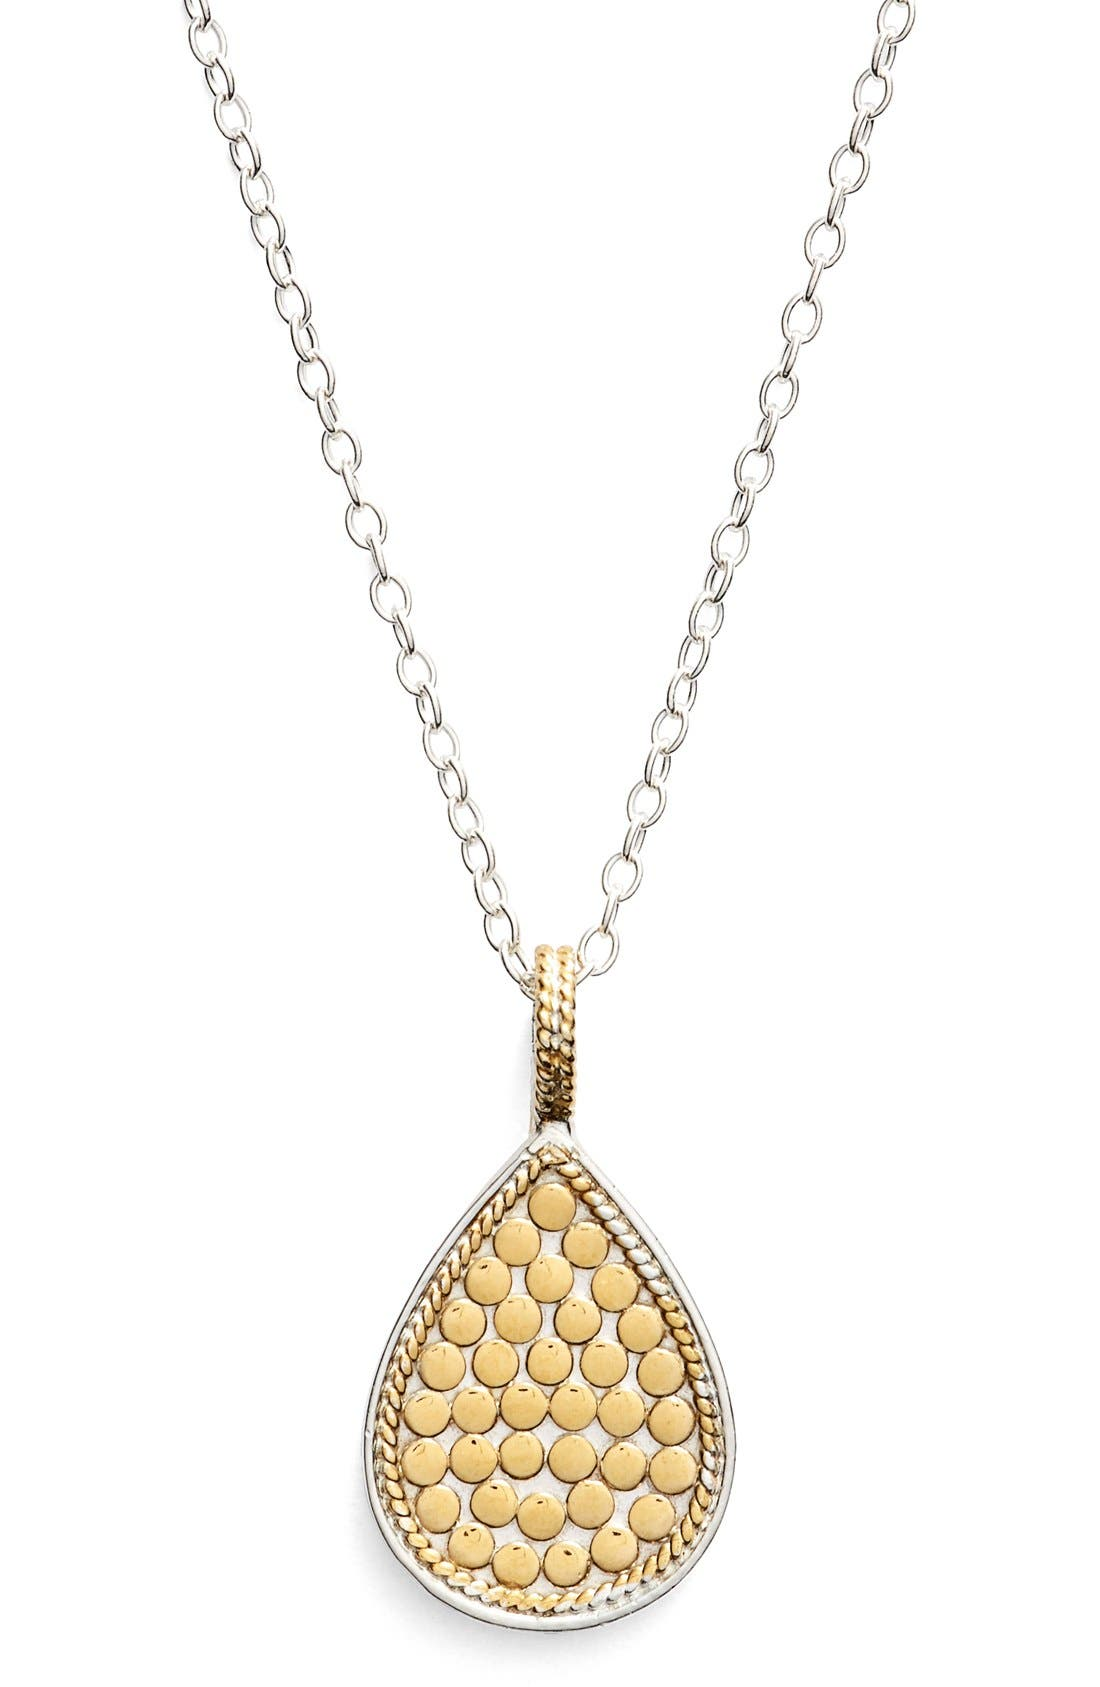 Main Image - Anna Beck 'Gili' Reversible Teardrop Pendant Necklace